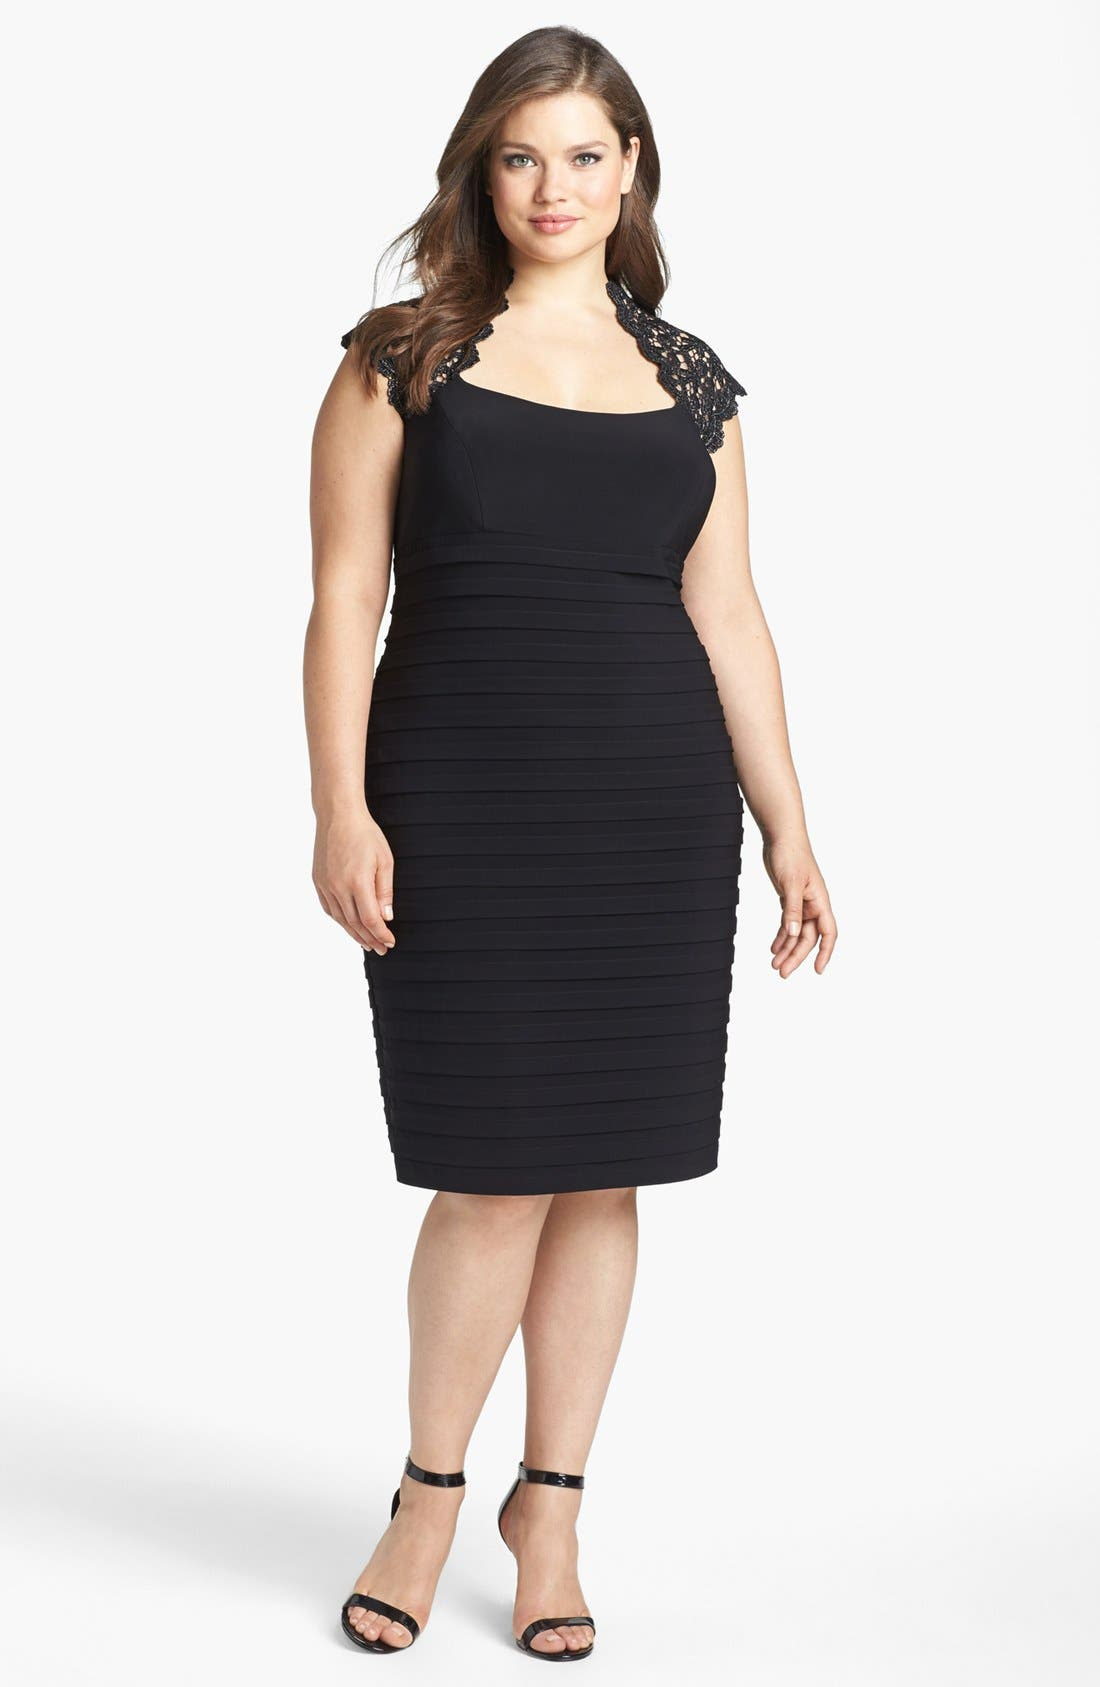 Alternate Image 1 Selected - Xscape Lace Yoke Banded Sheath Dress (Plus Size)